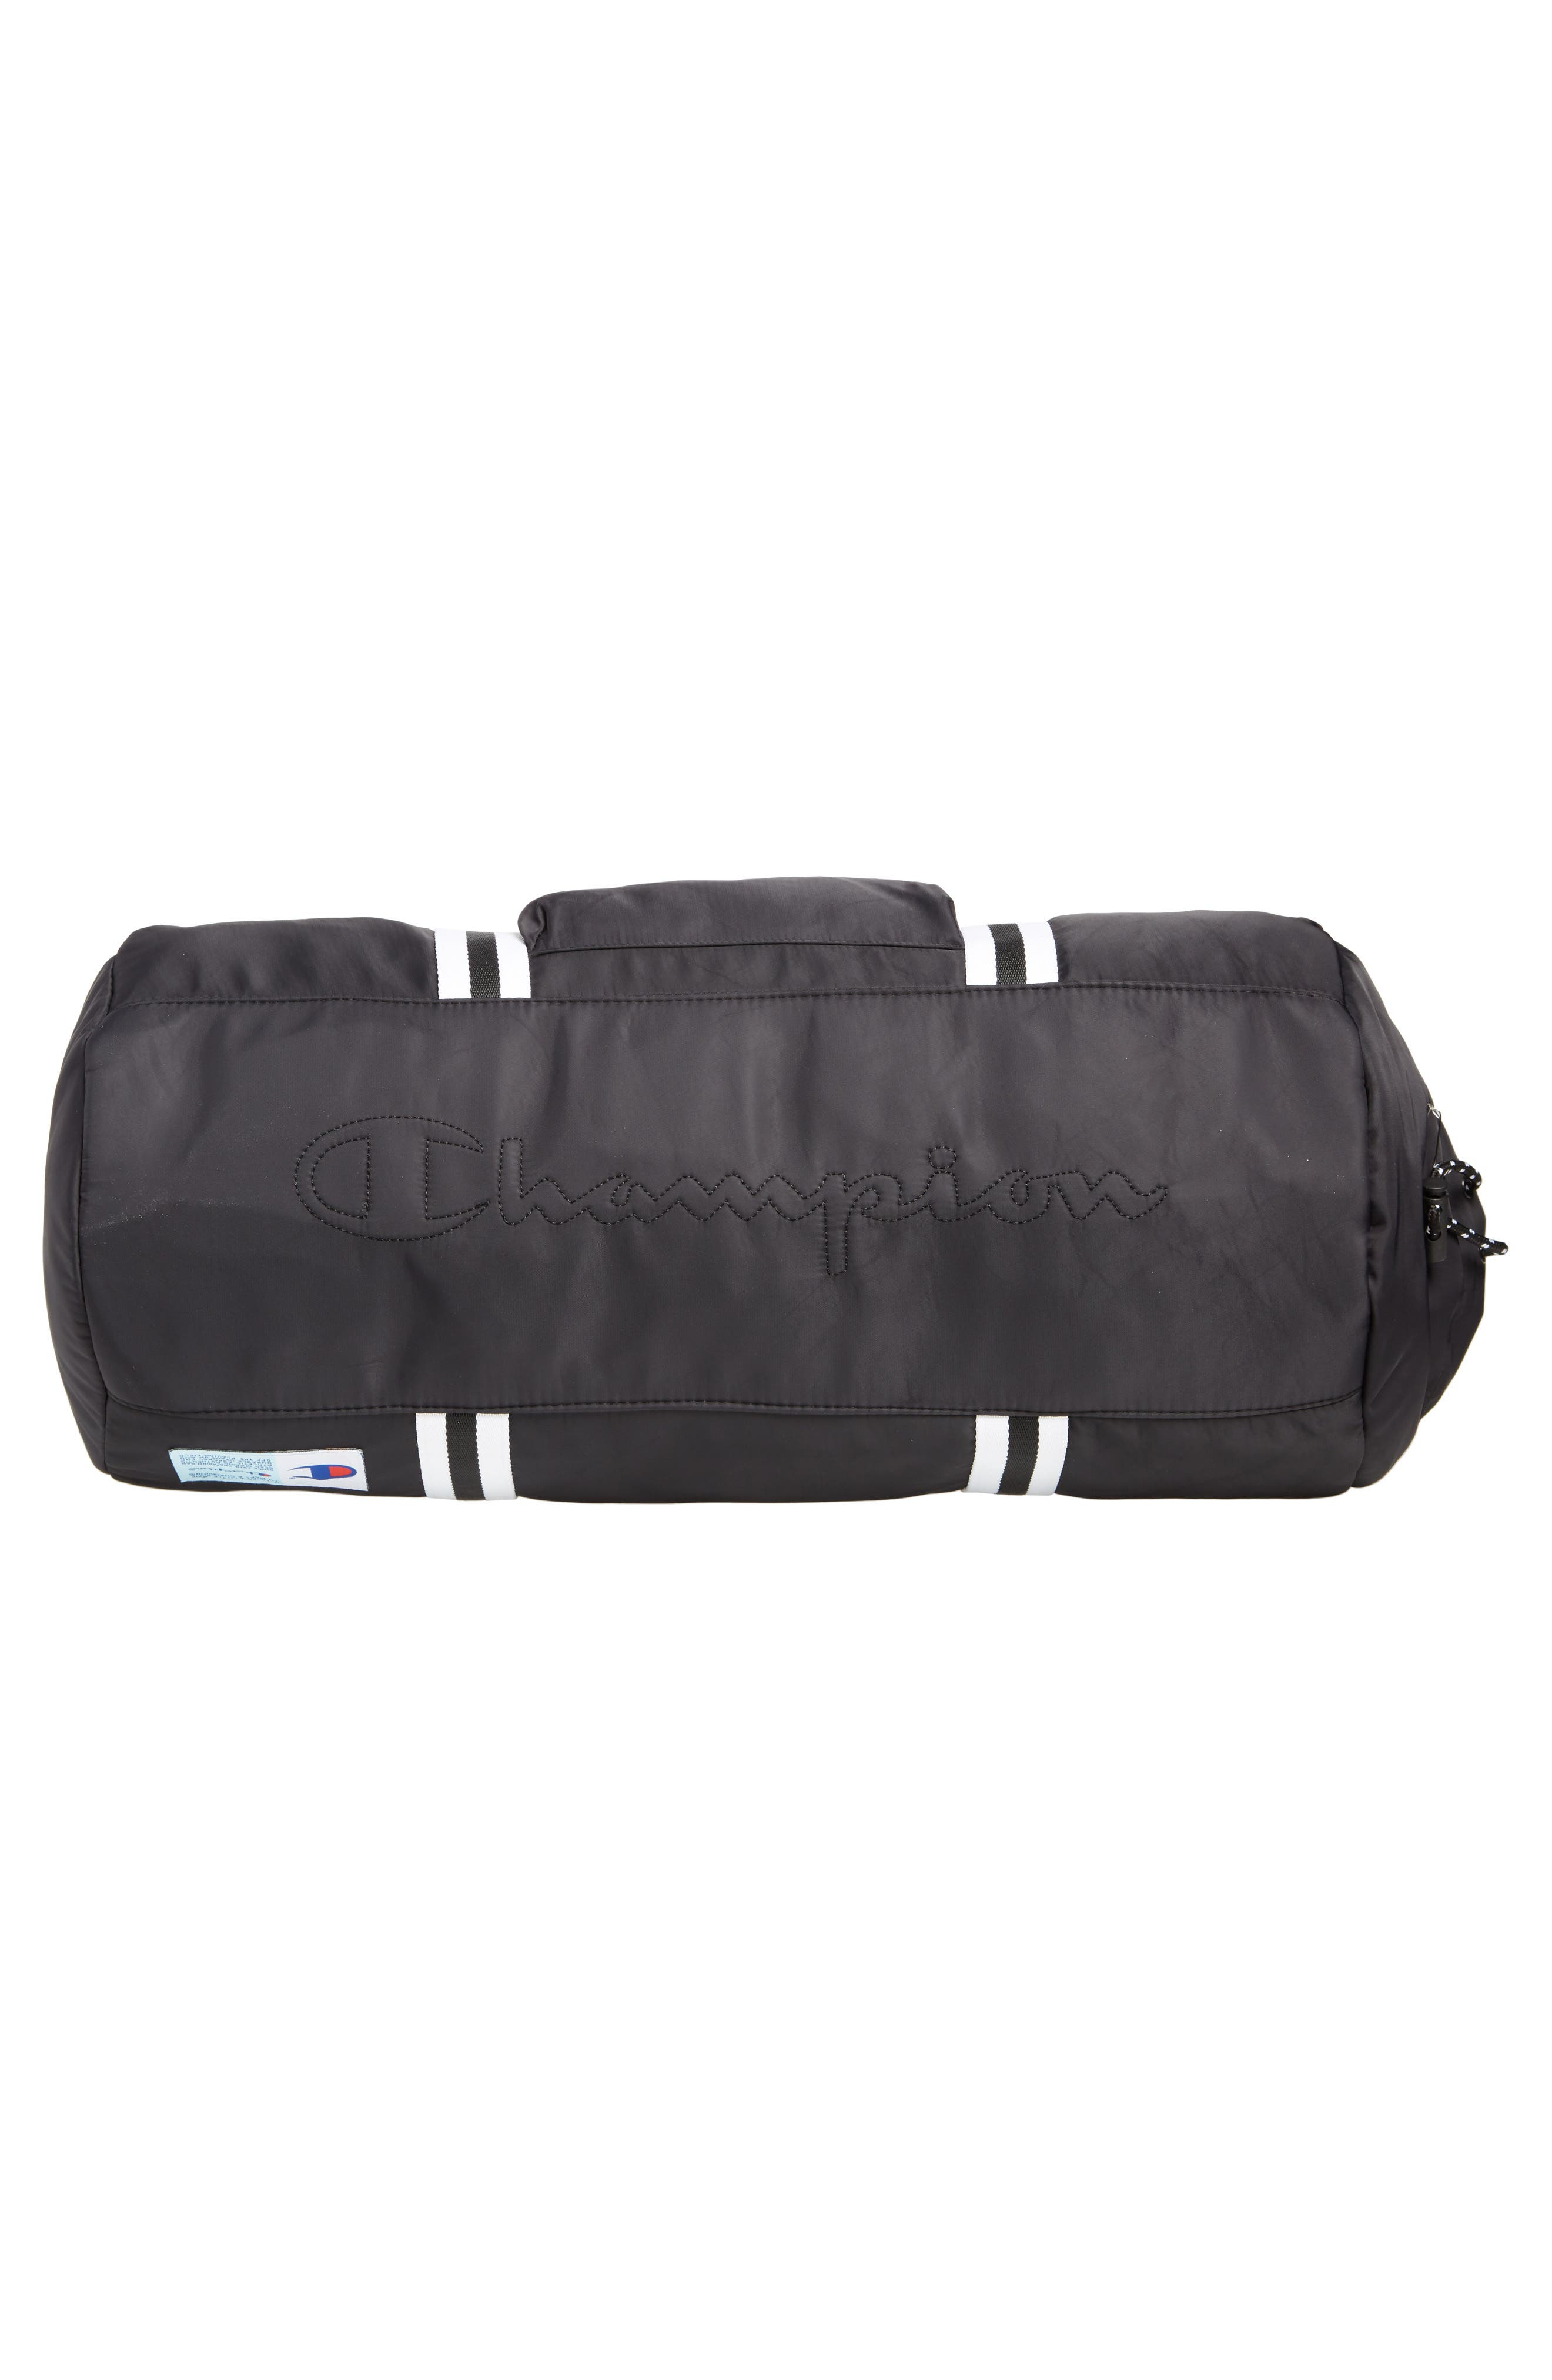 Free Form Duffel Bag,                             Alternate thumbnail 6, color,                             BLACK